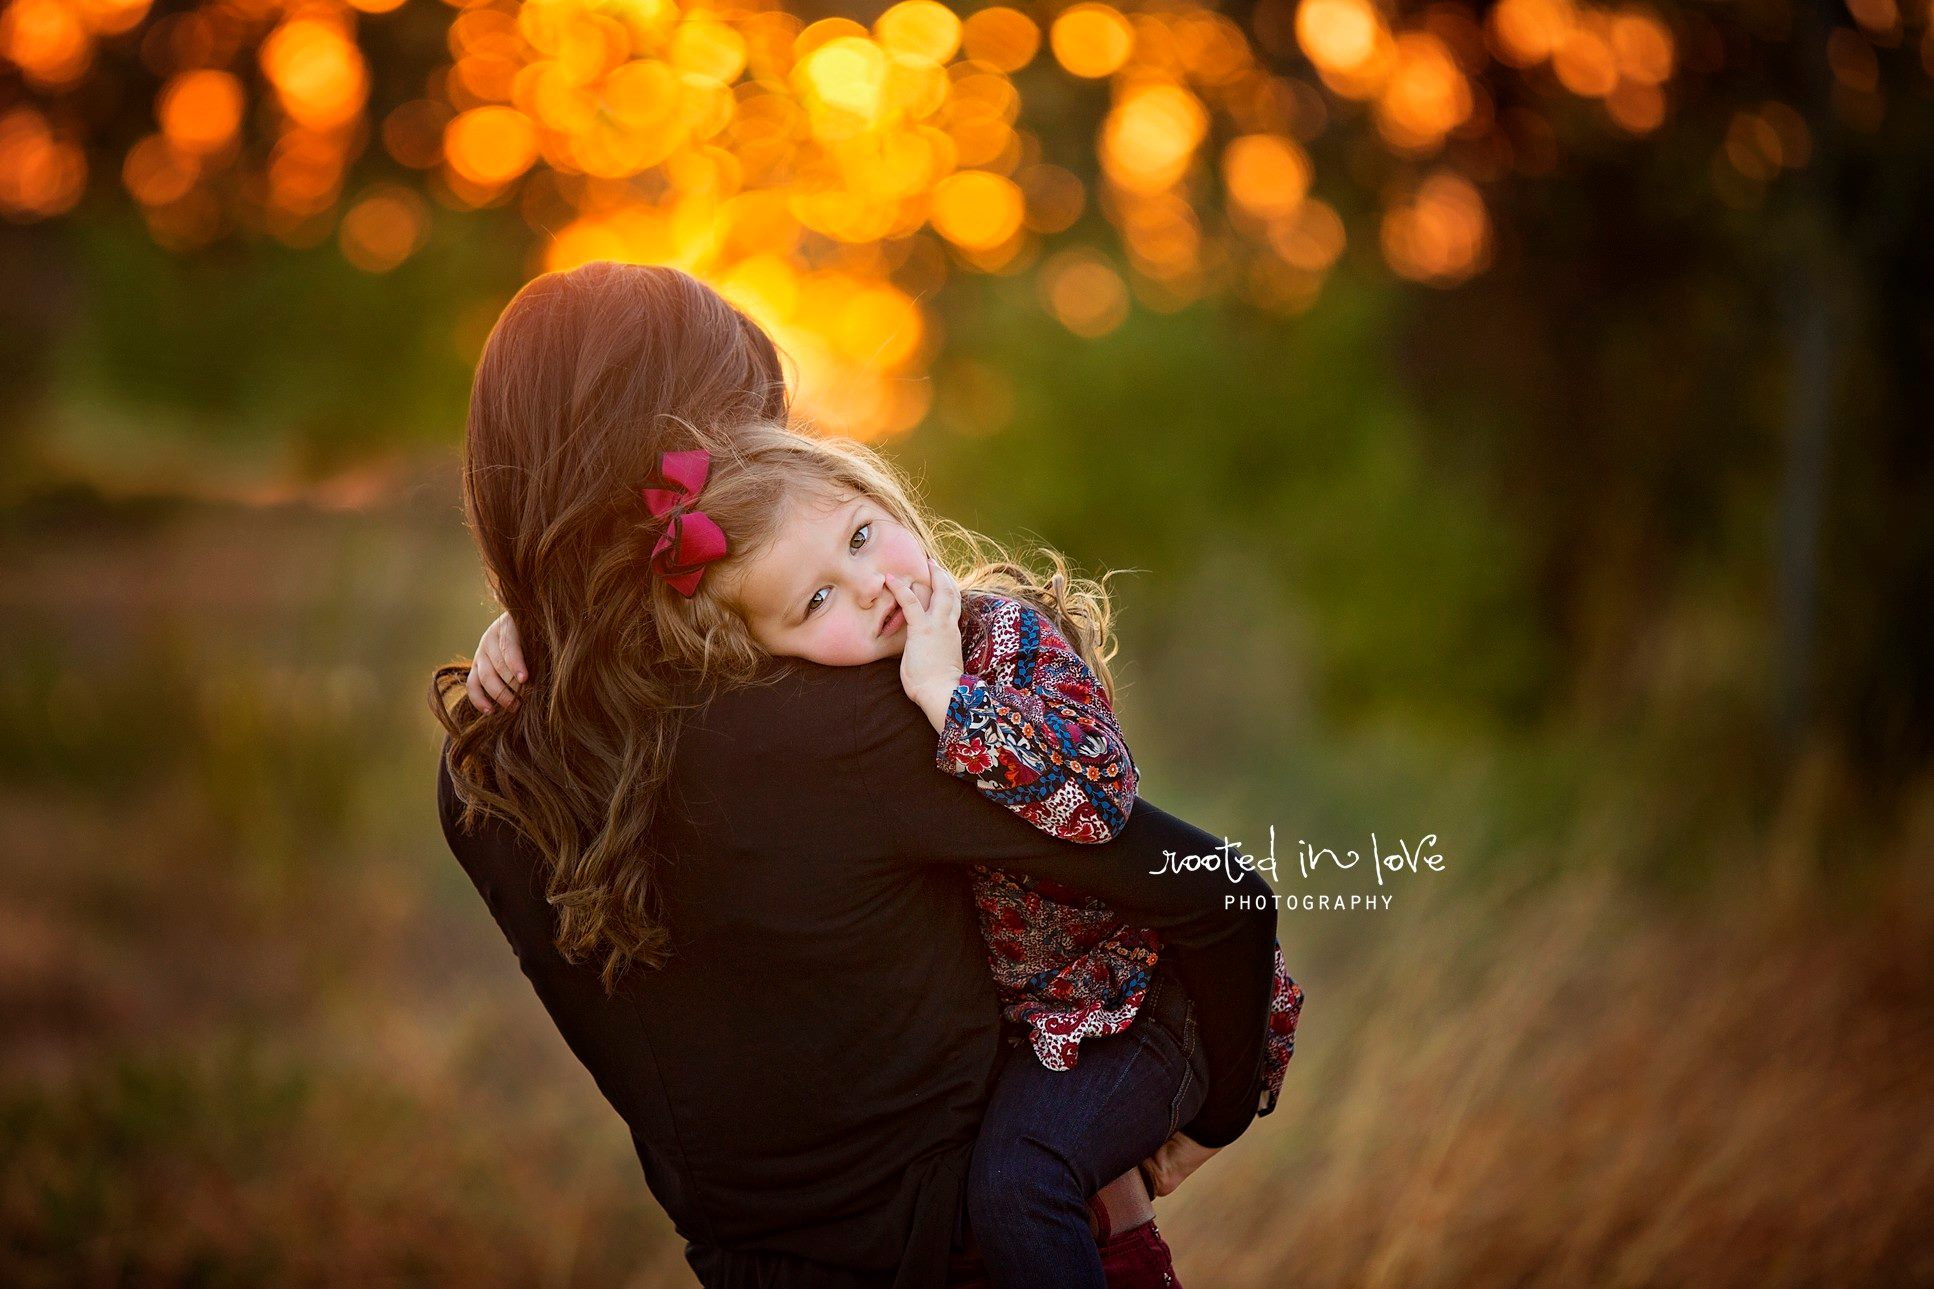 Rooted in Love Photography - Daily Fan Favorite » Beyond